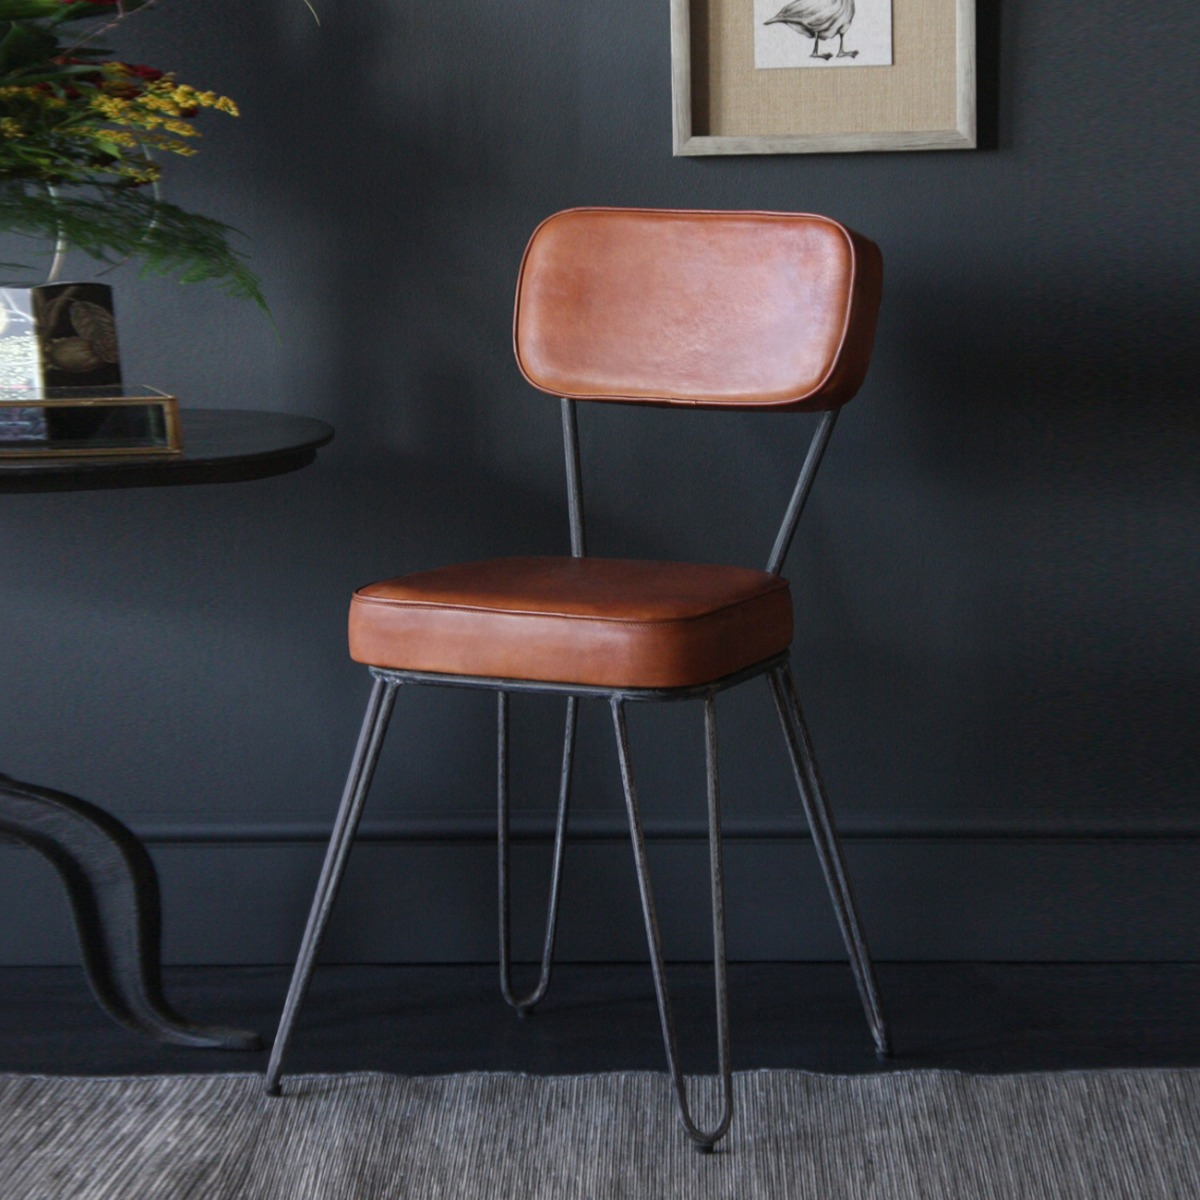 Our Hairpin Chair is a refreshingly mid-century look.